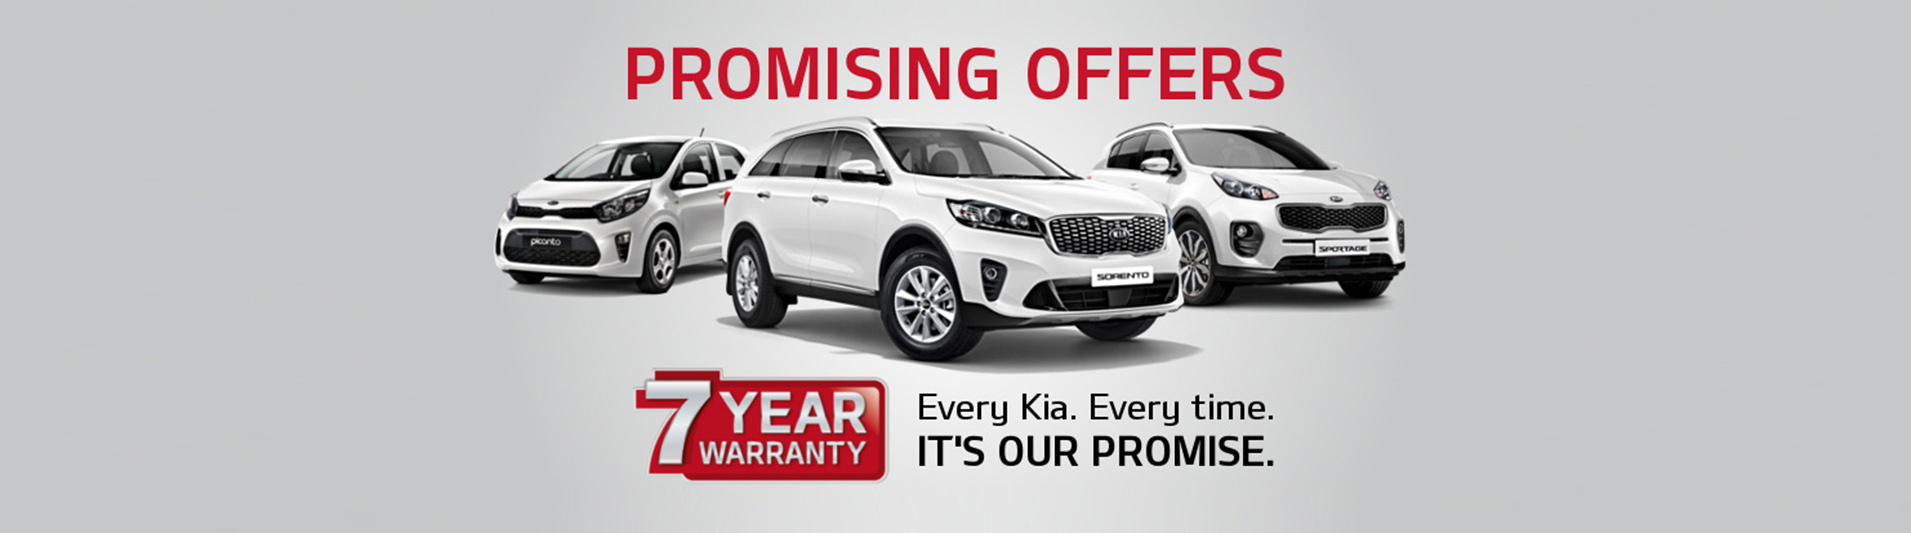 Promising Offers from Kia